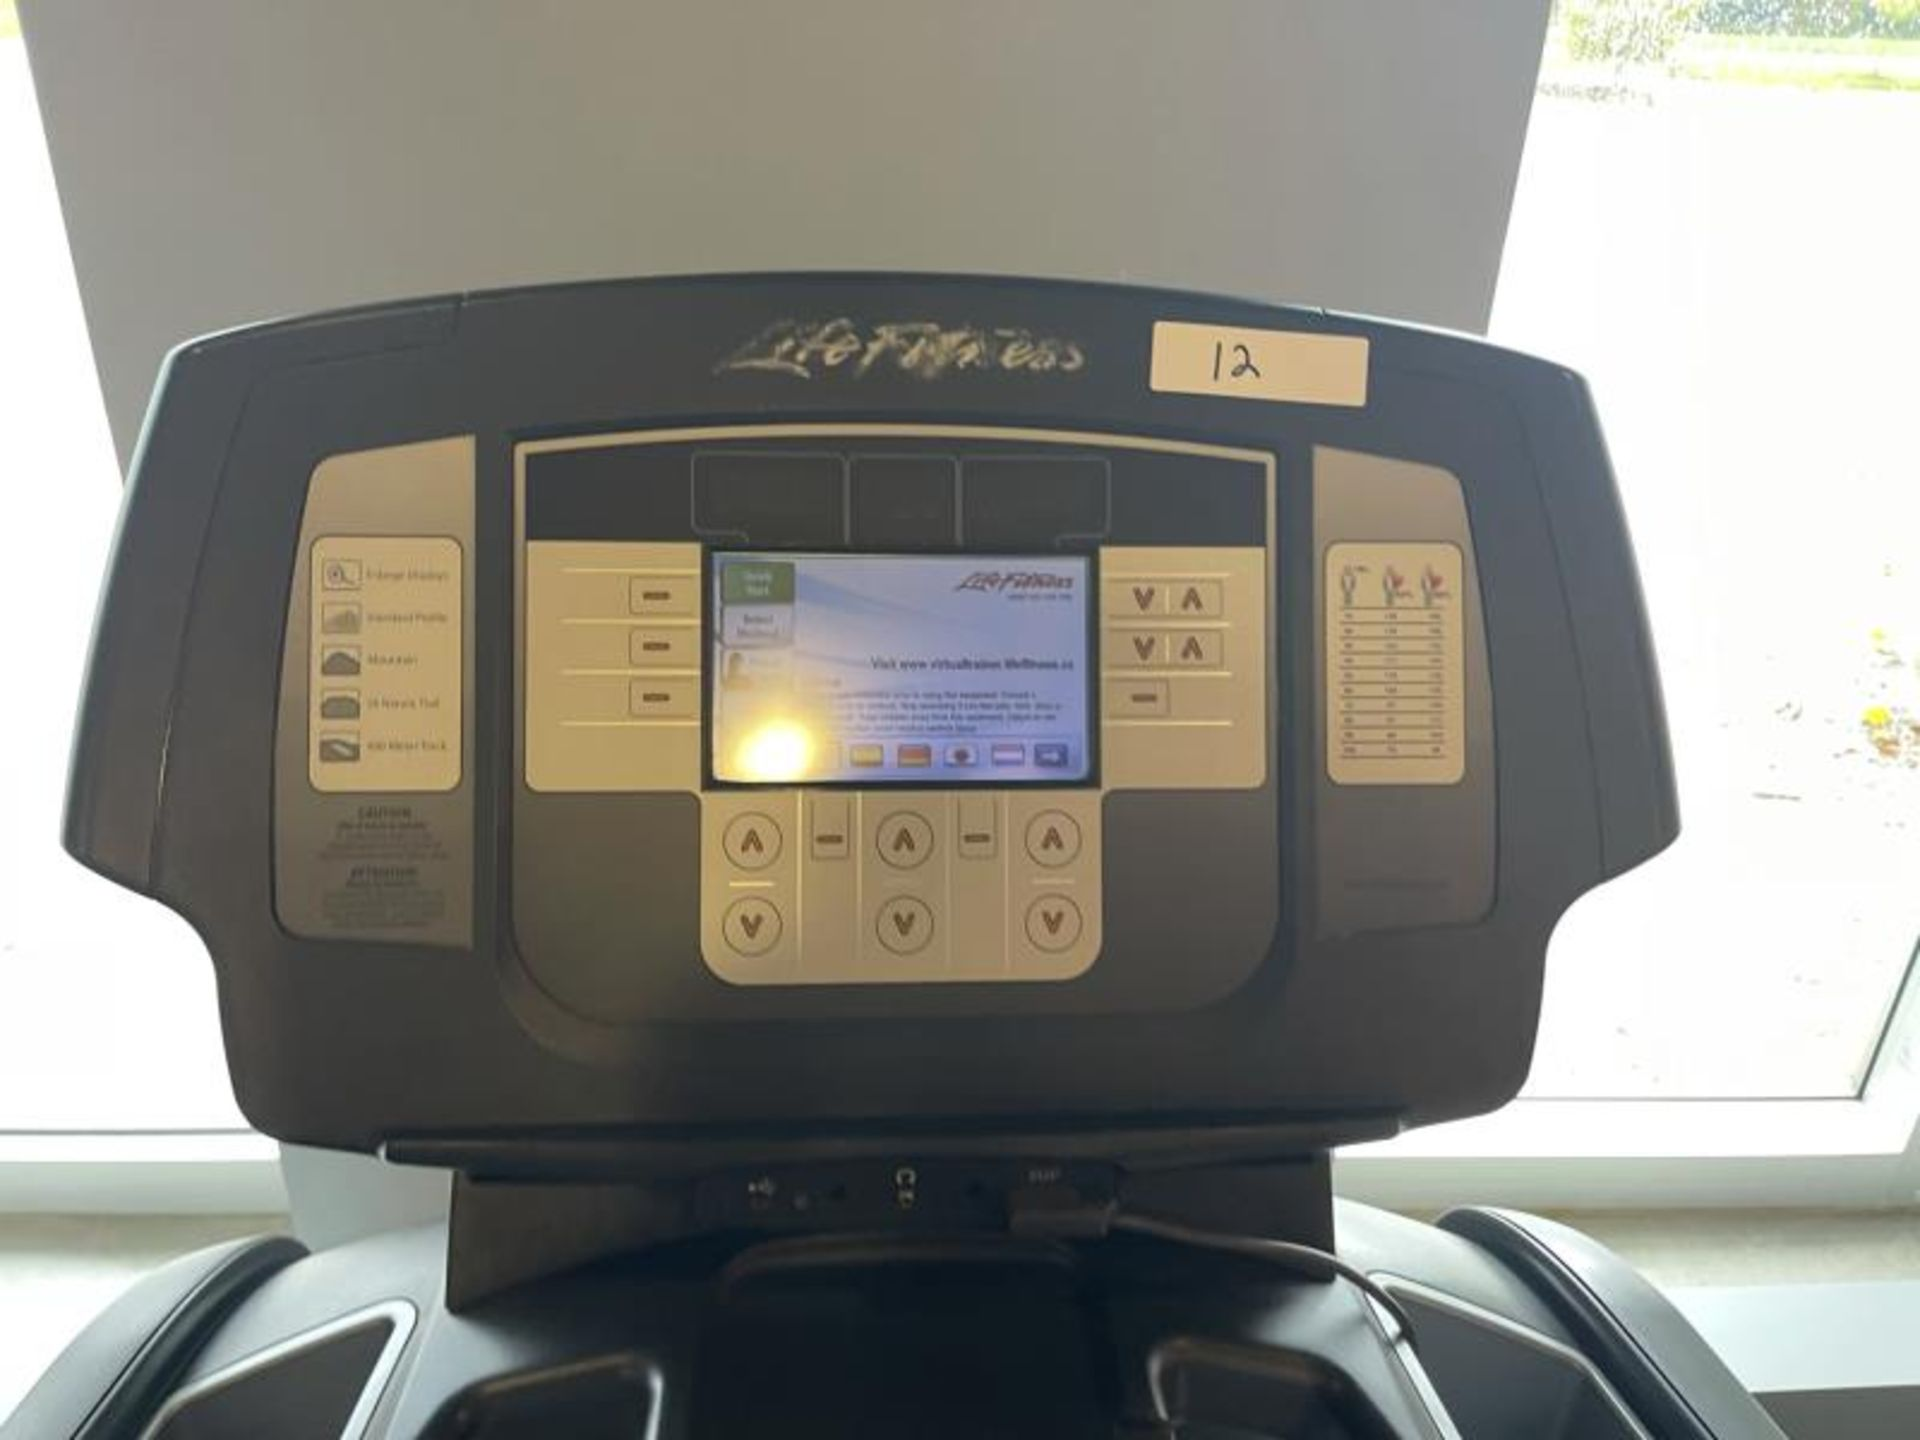 Life Fitness Treadmill M: 95T with Flex Deck, Shock Absorption System SN: TET107092 - Image 2 of 2